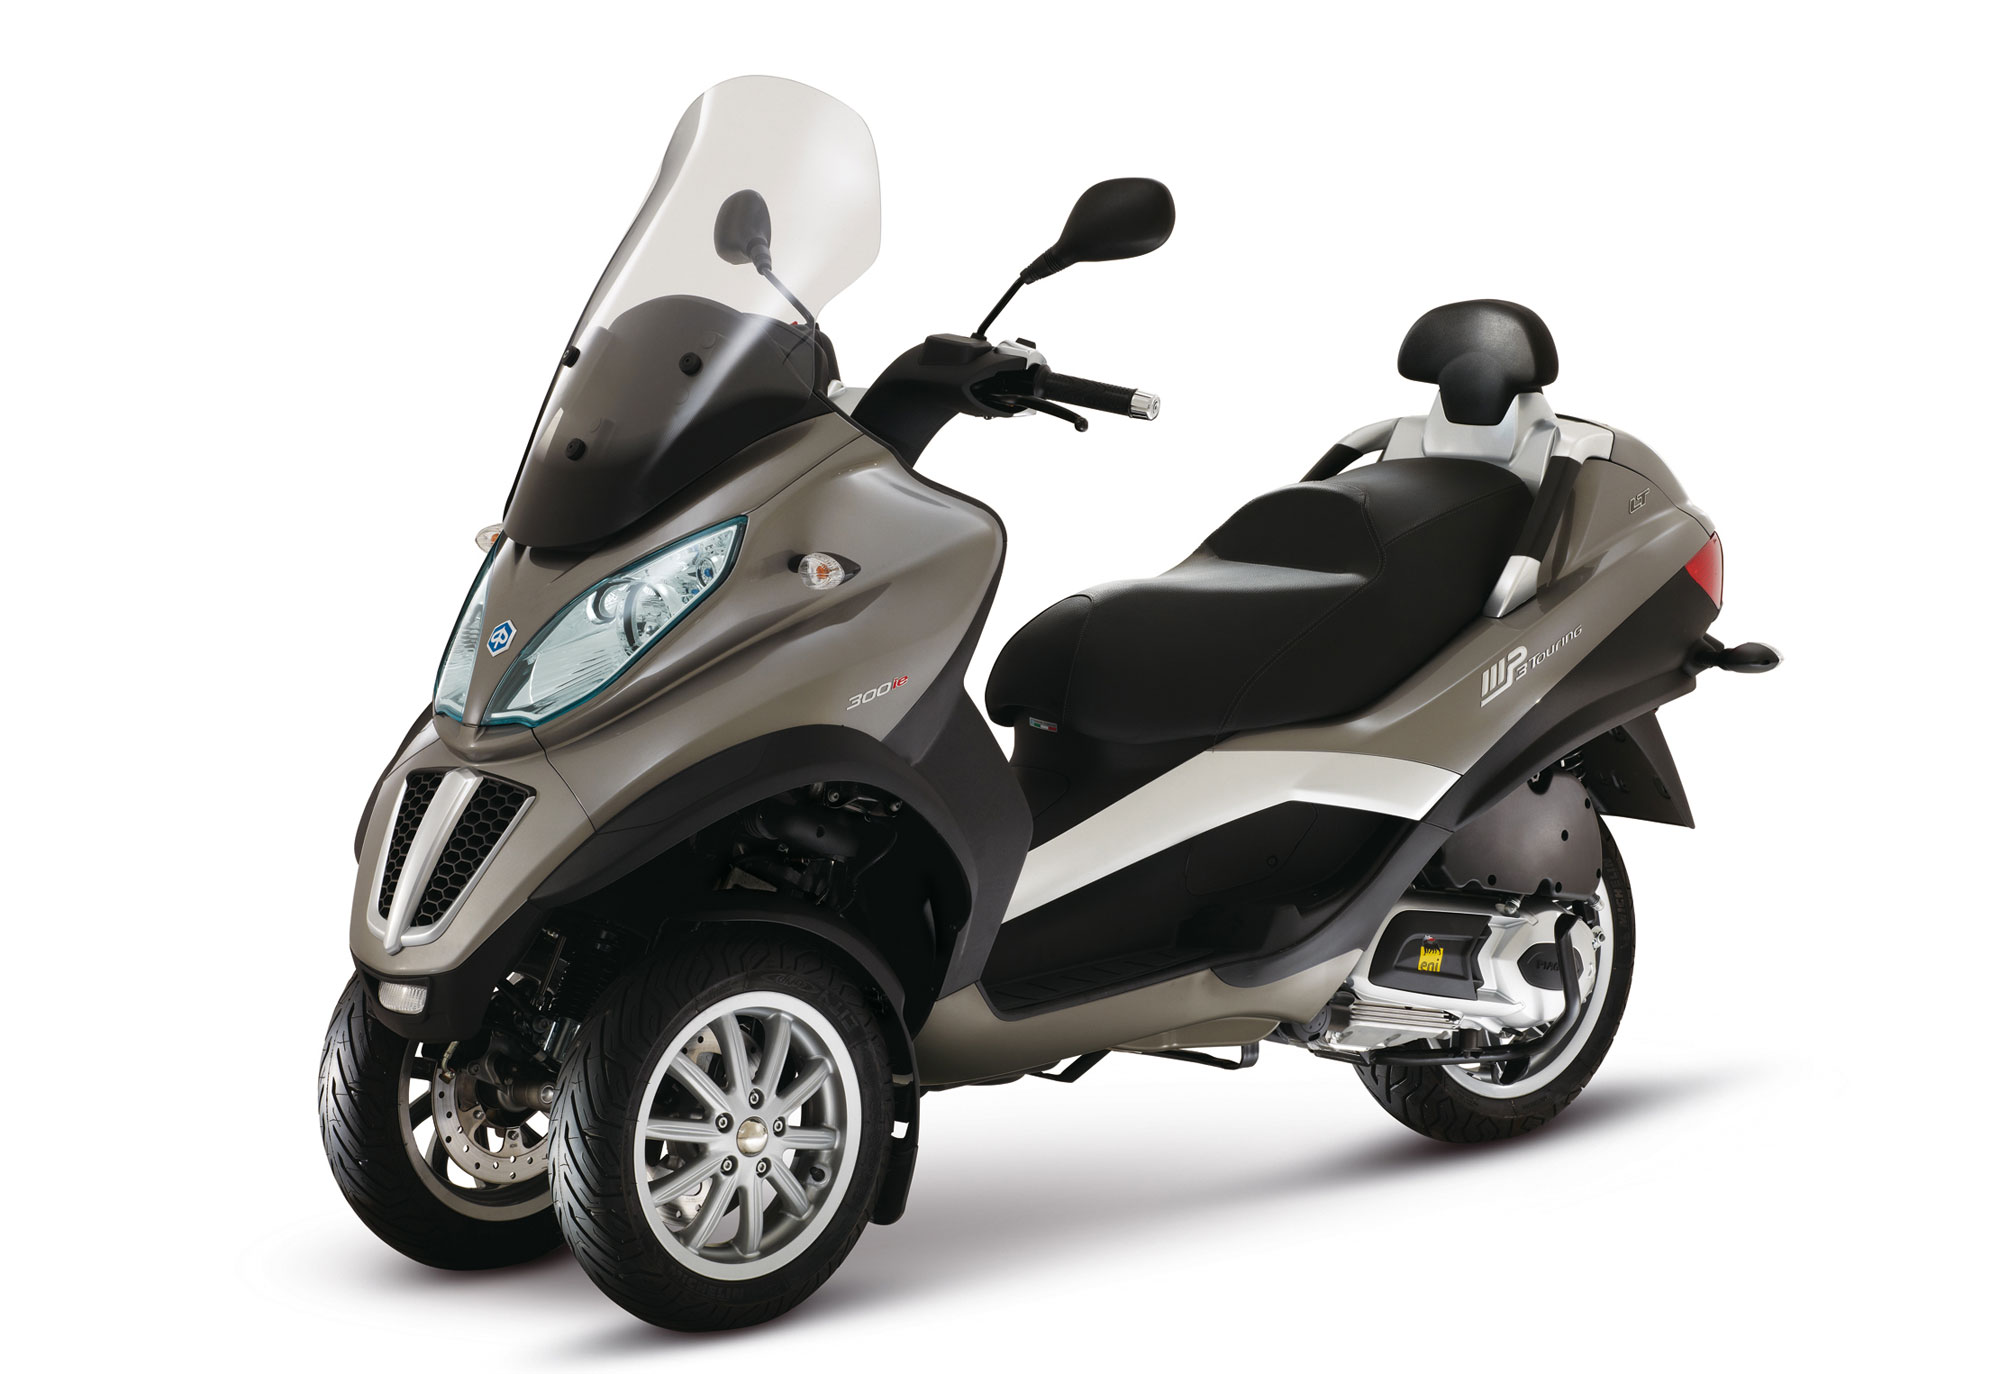 Can I Ride A Piaggio Mp On A Car Licence